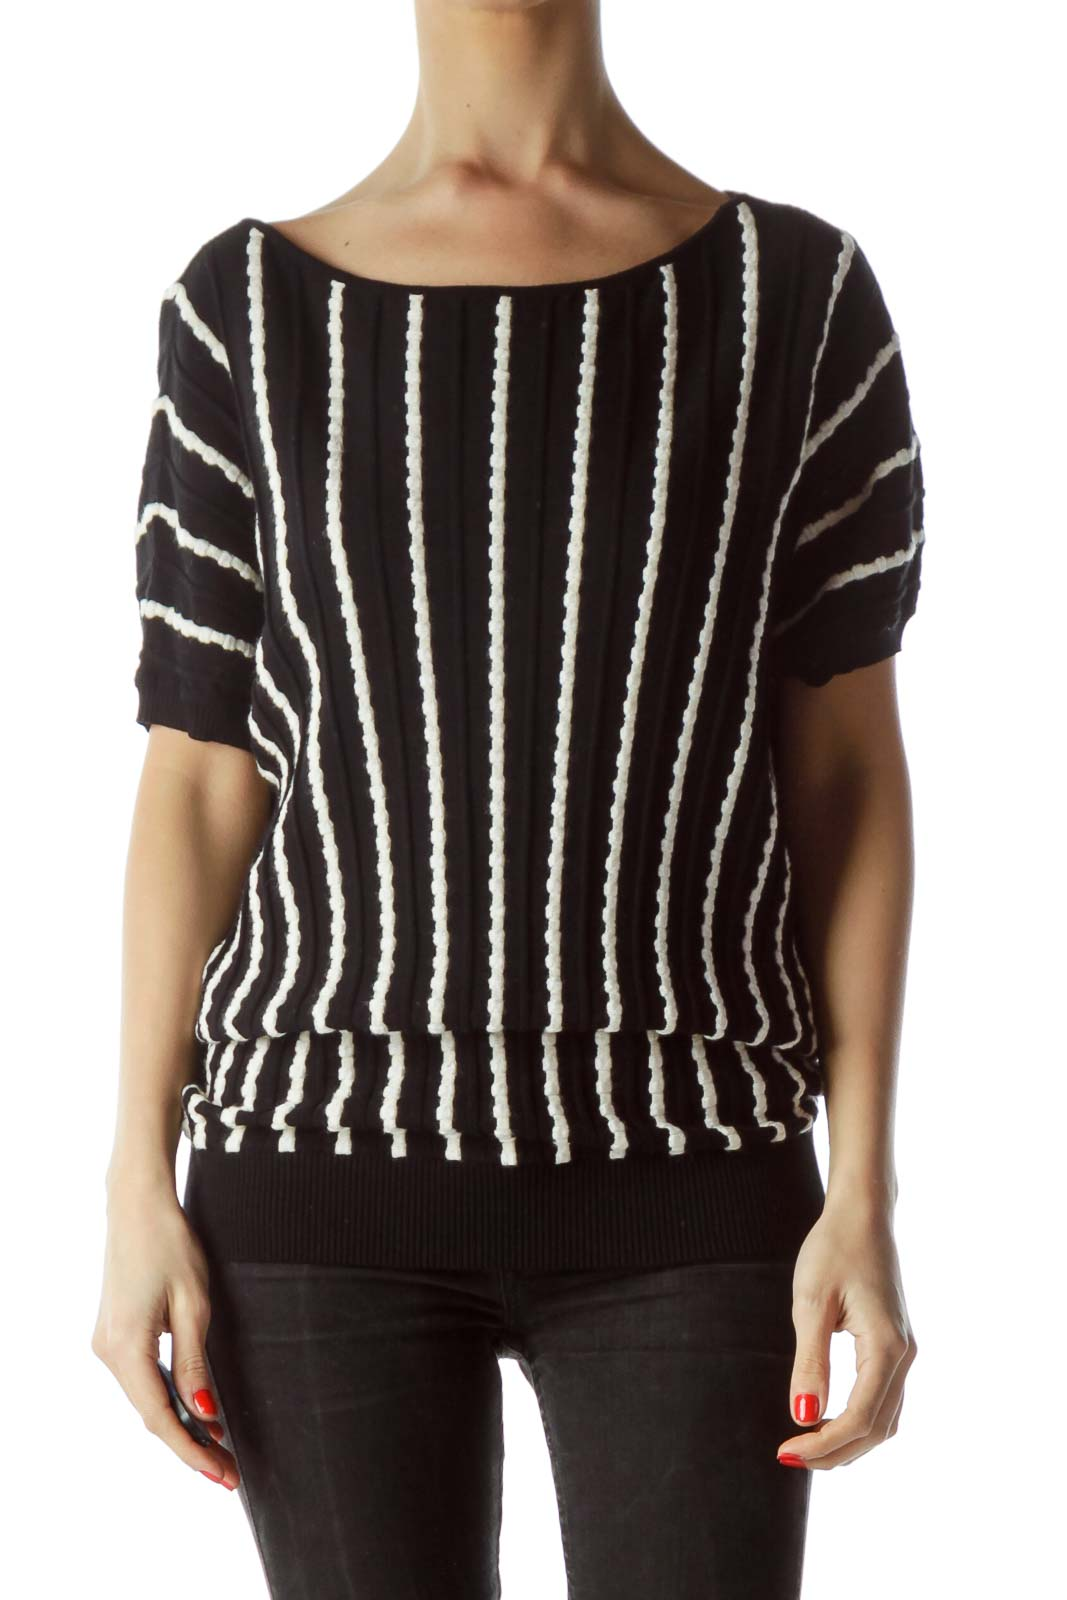 Black Cream Knitted Stripes Textured Top